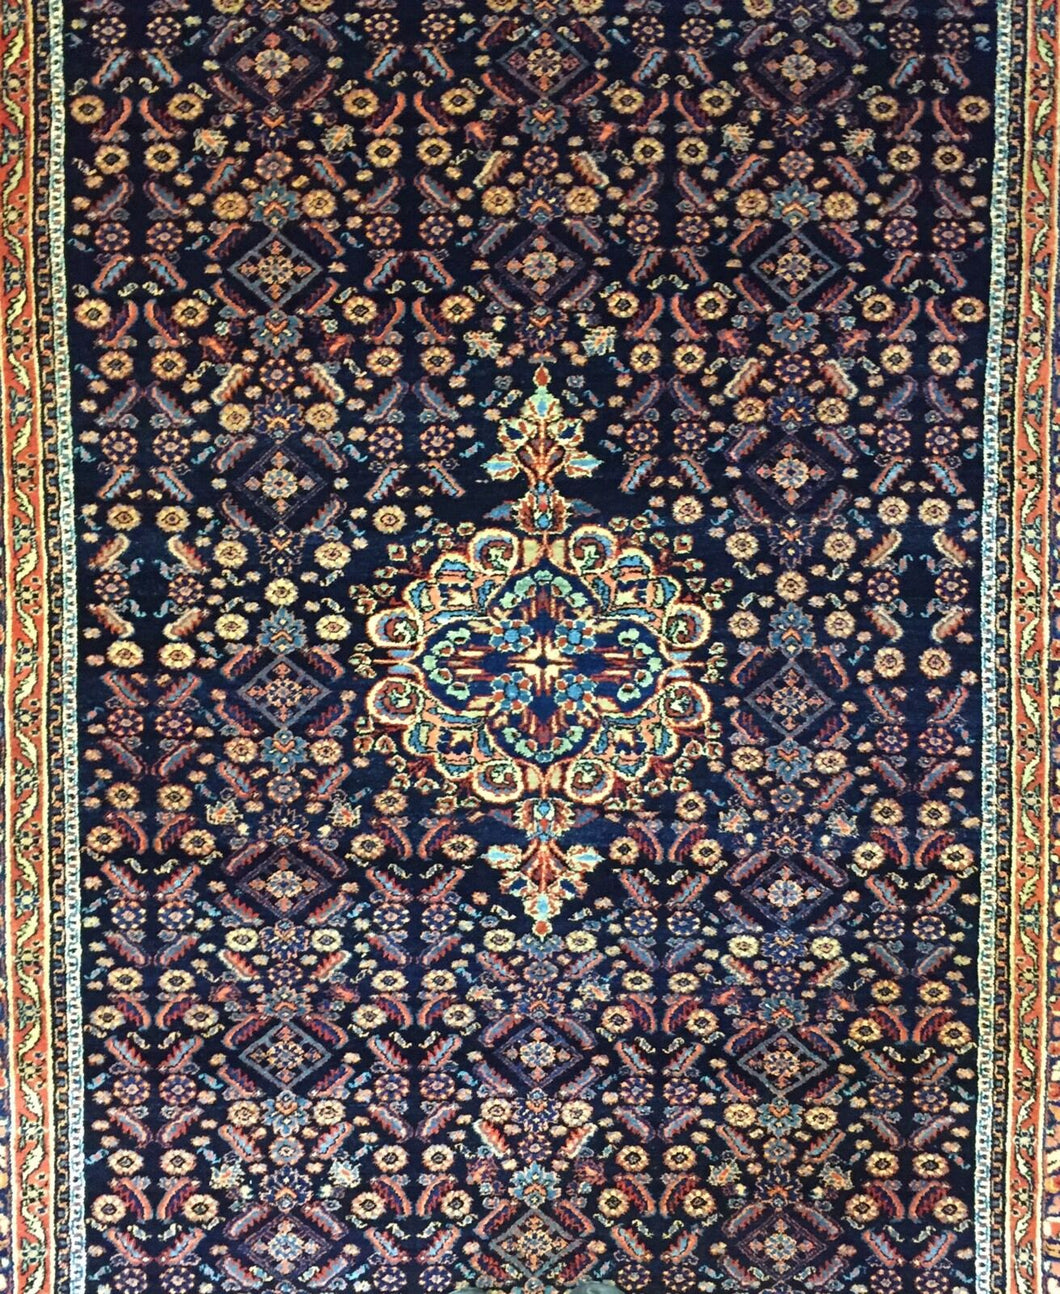 Quality Qazvin - 1920s Antique Persian Rug - Gallery Carpet - 6' x 12'2